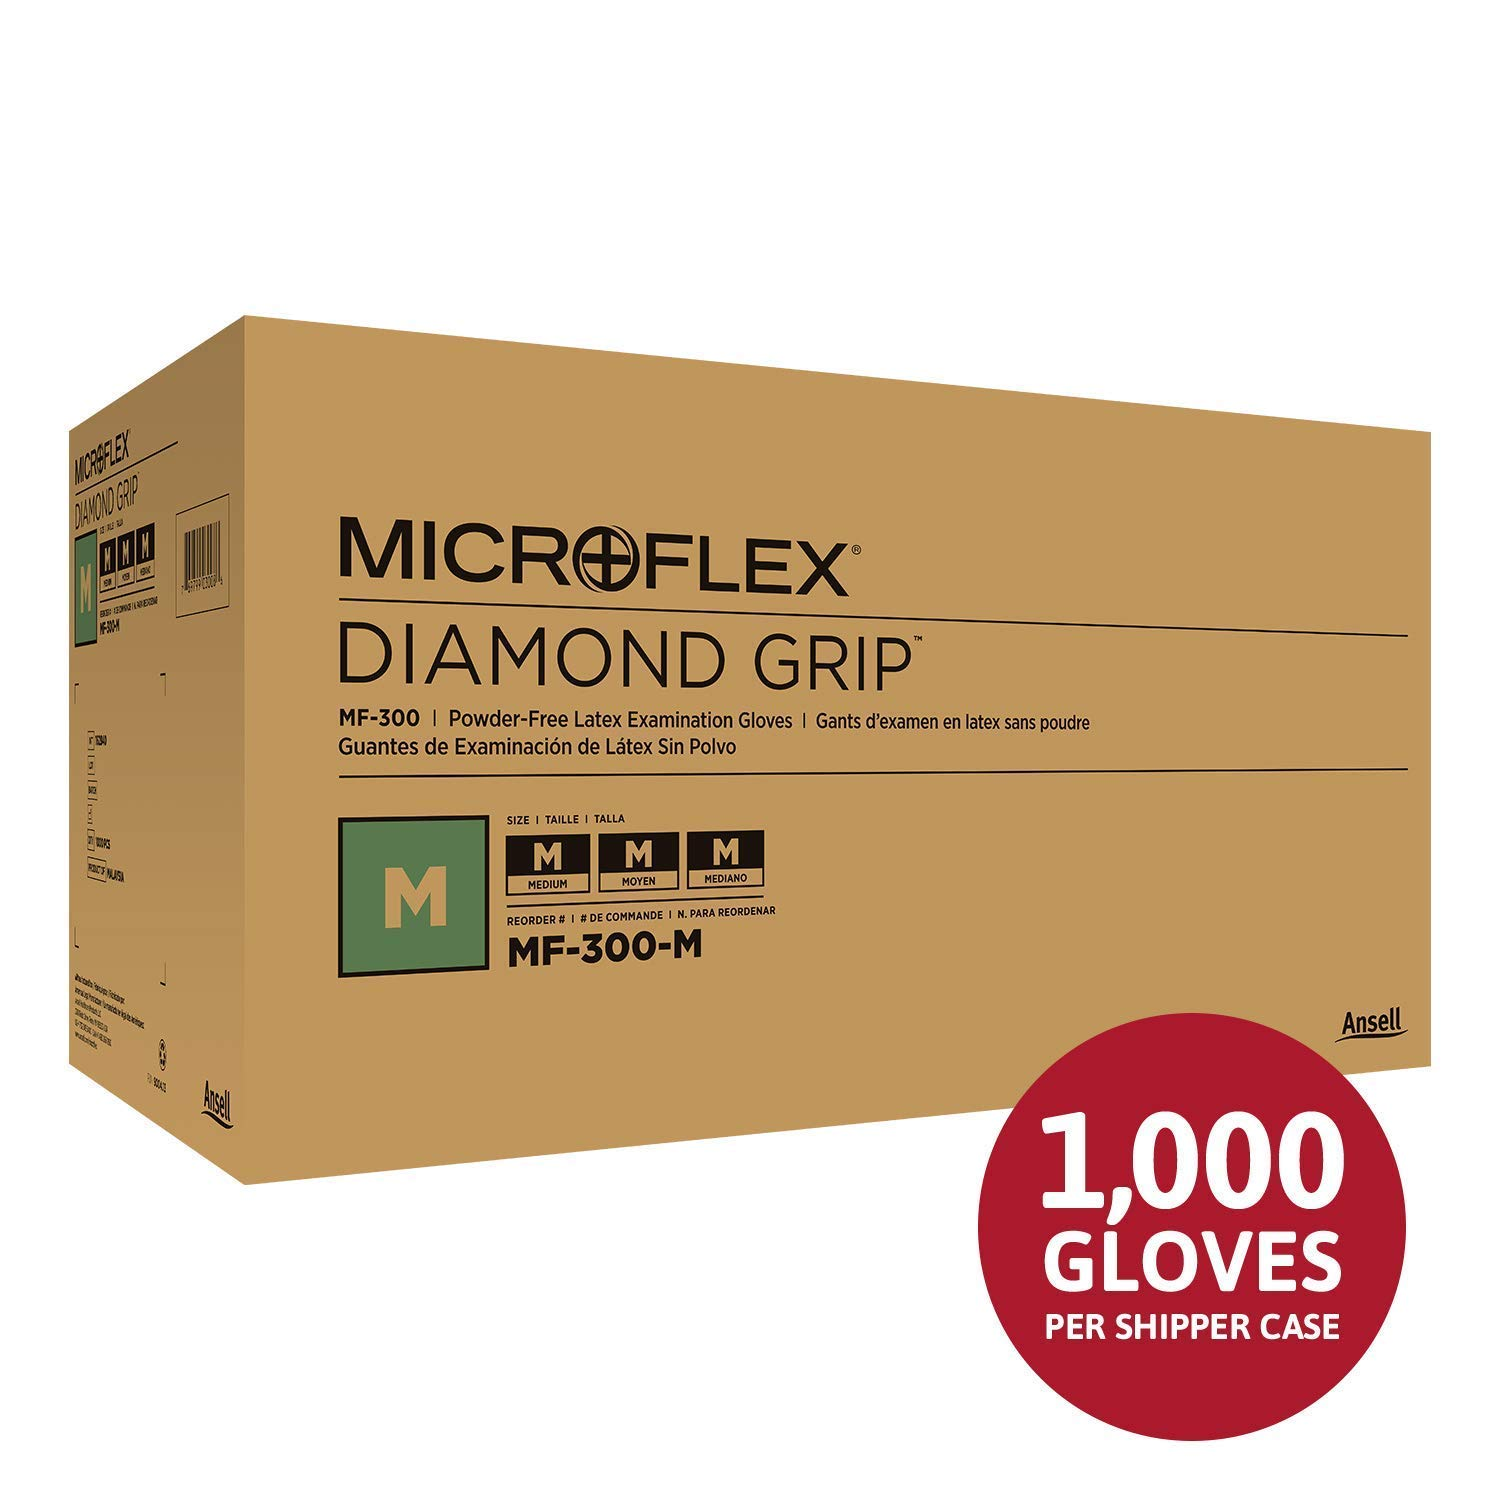 Size Extra Small Microflex Diamond Grip MF-300 Disposable Gloves in Latex Multi-Purpose Box of 100 Units White Powder Free Glove in Natural Rubber for Exam Cleaning or Mechanic Tasks